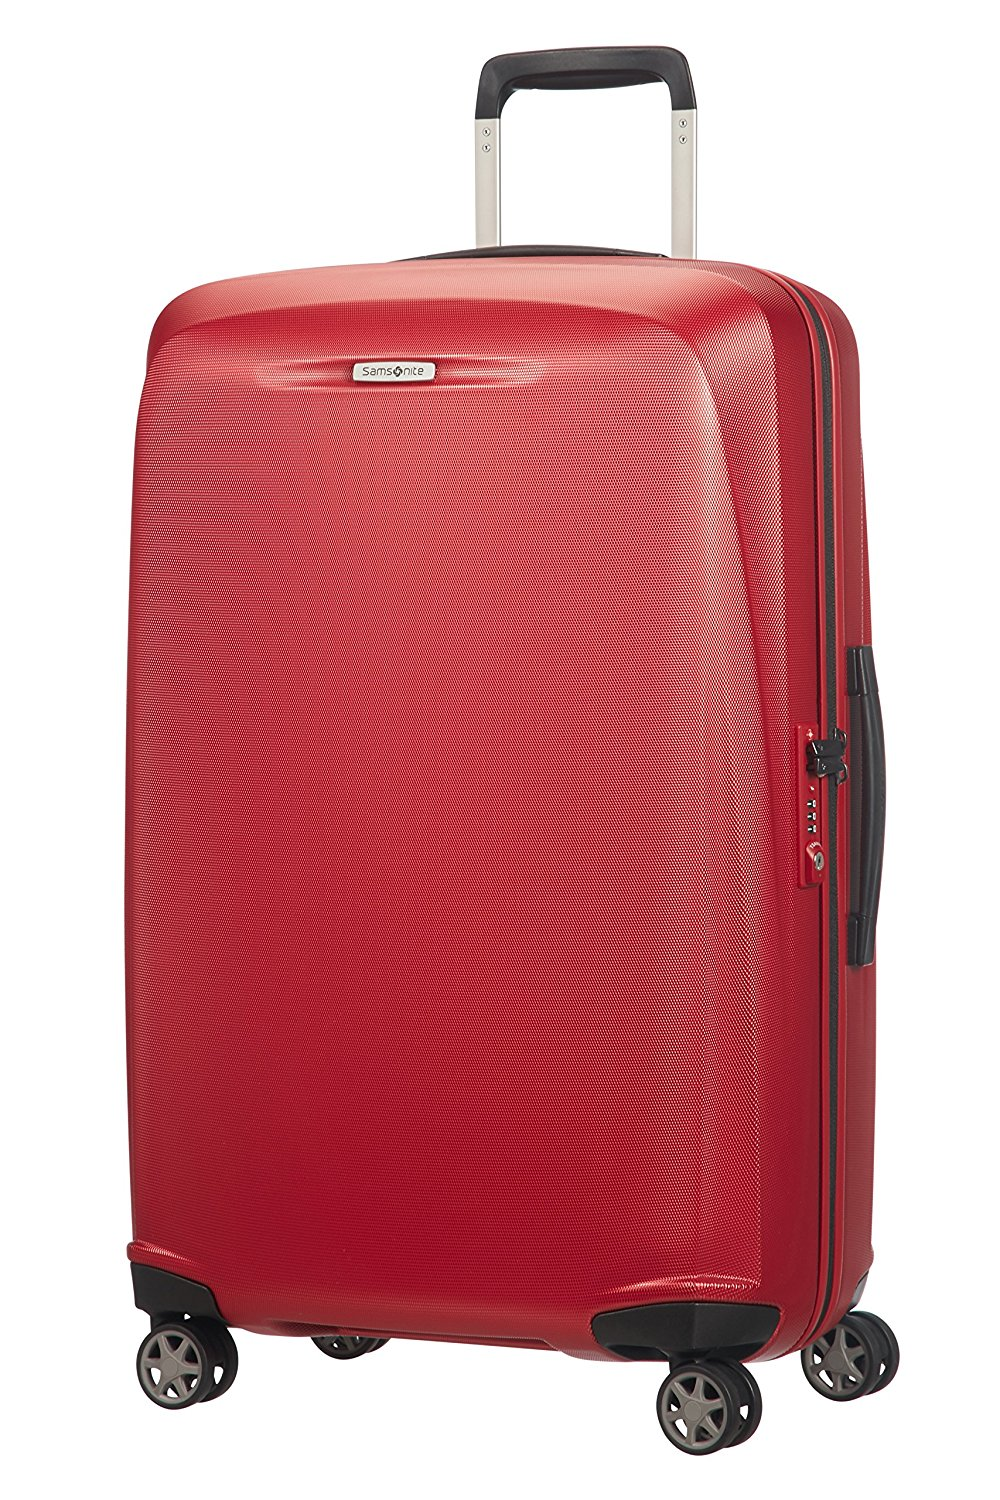 SAMSONITE Starfire Spinner 69/25 Koffer, 69 cm, 67 L, Crimson Red